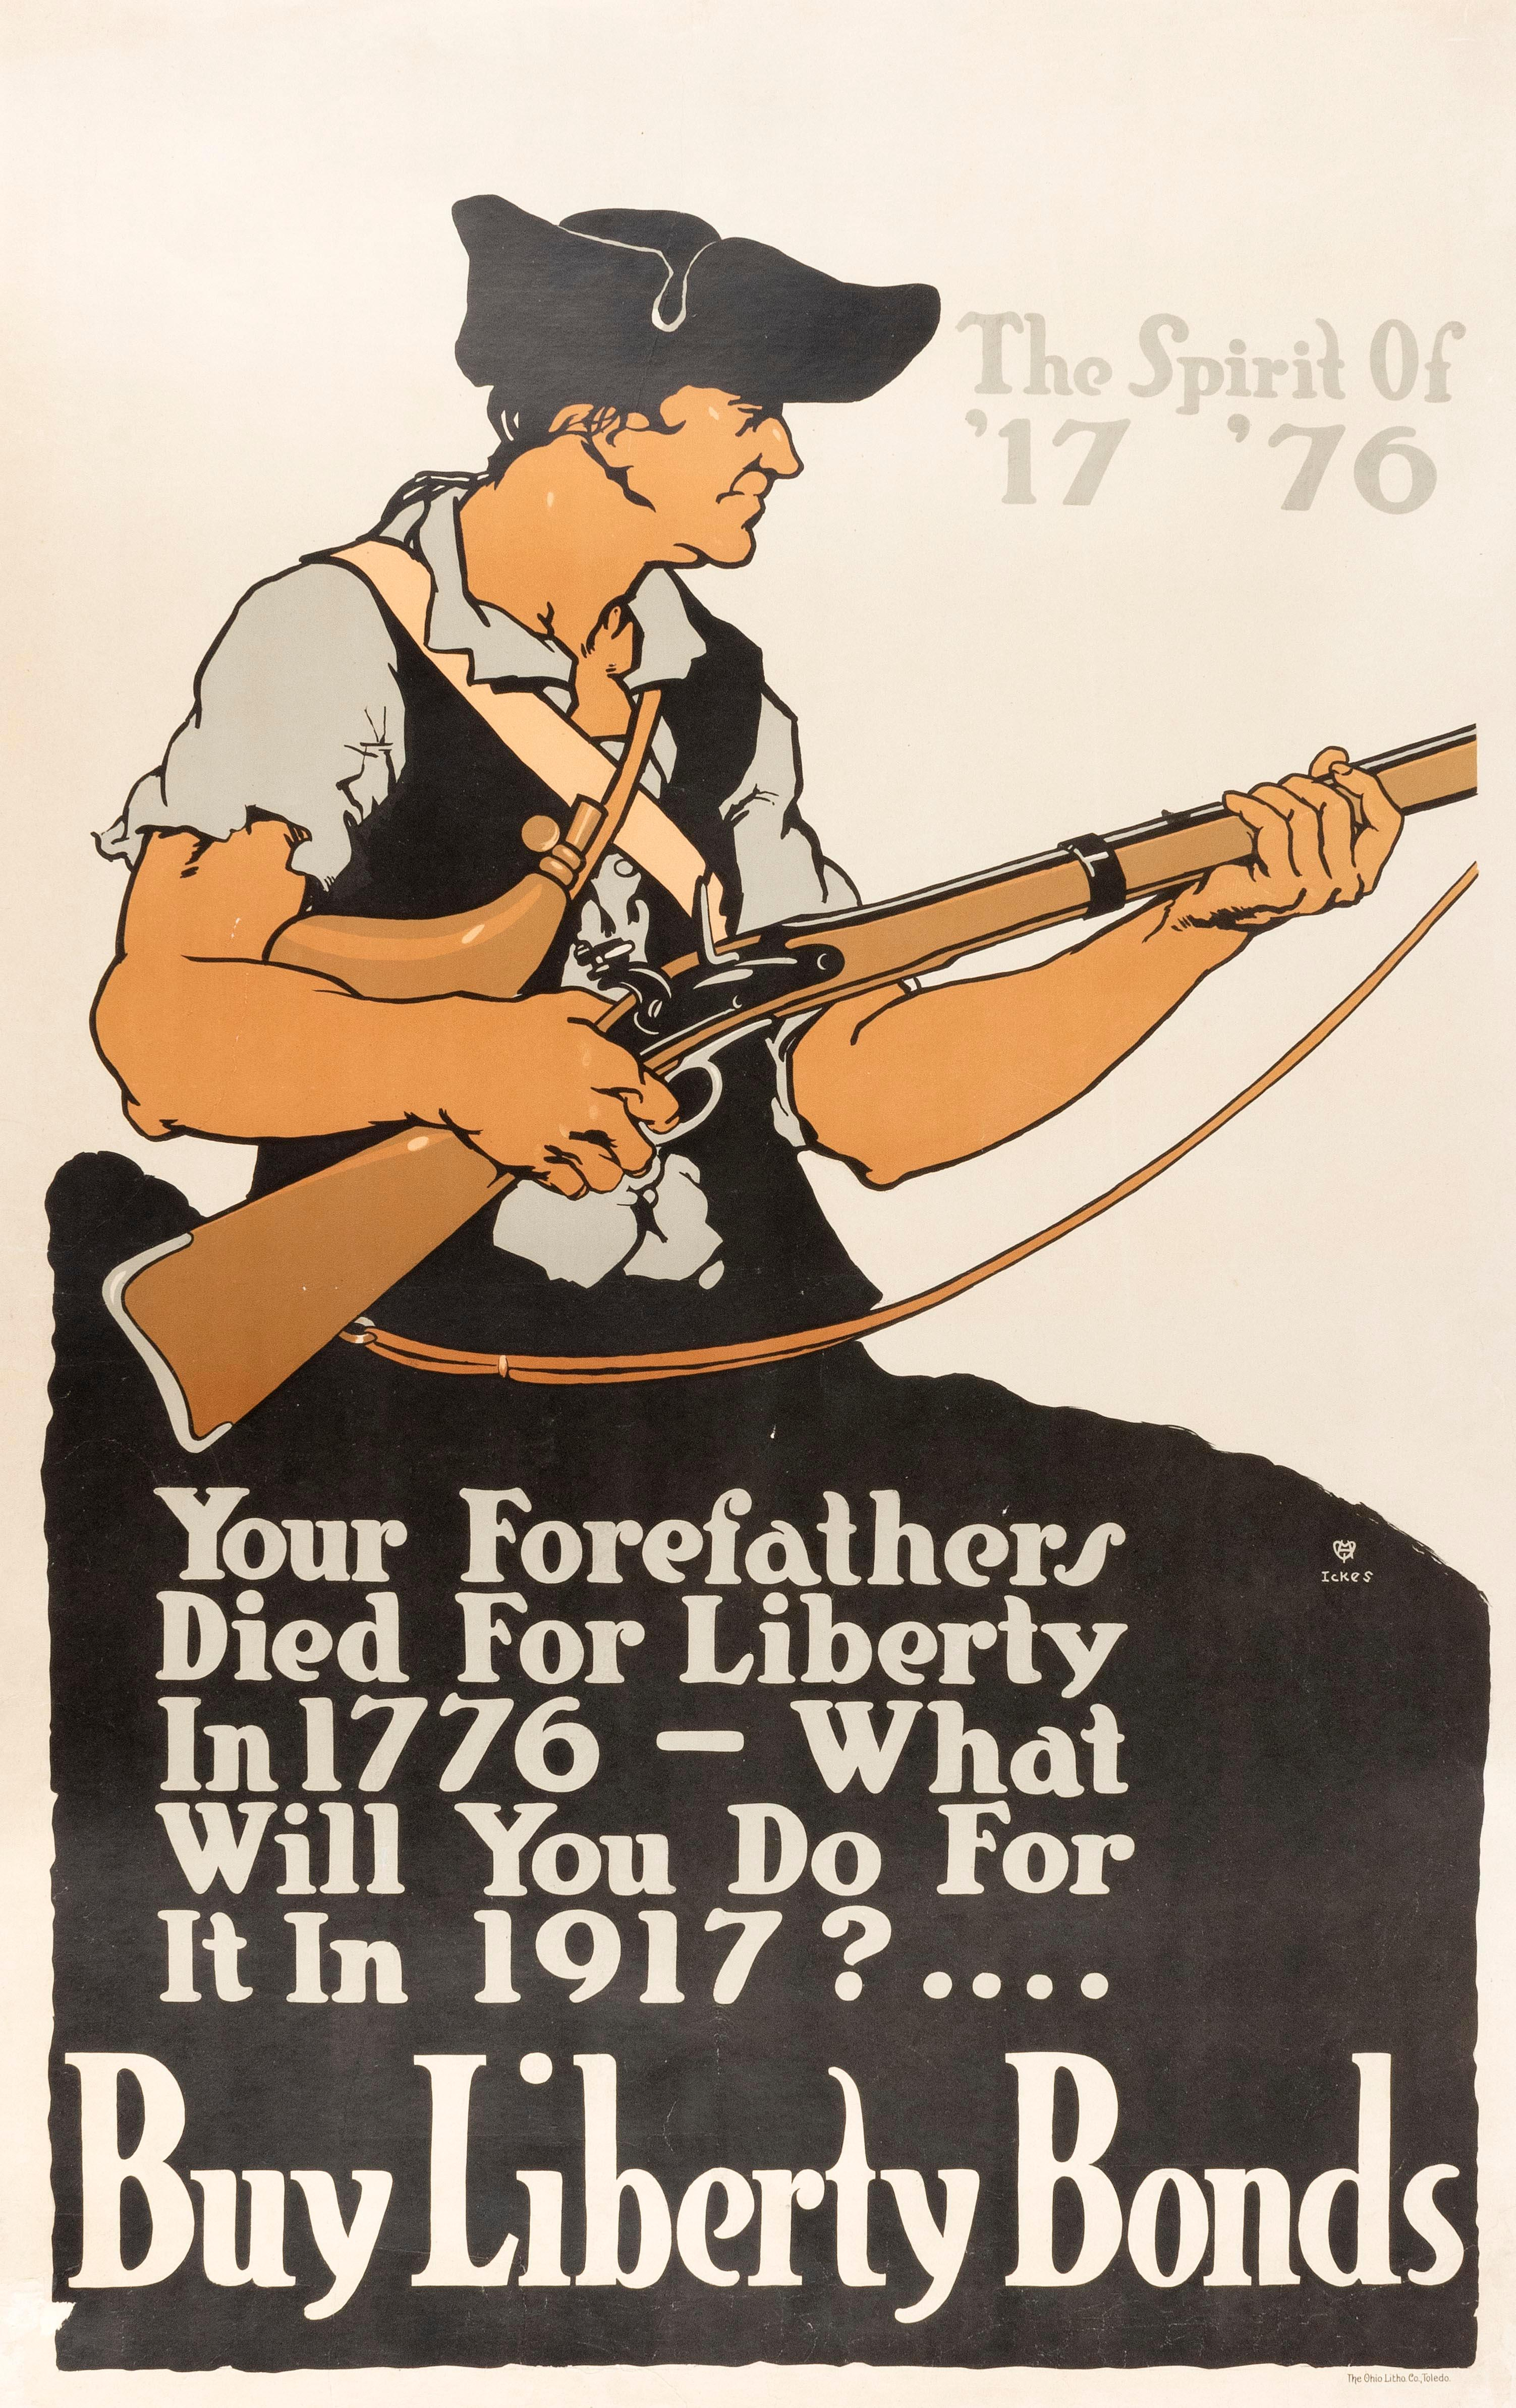 """""""YOUR FOREFATHERS DIED FOR LIBERTY IN 1776 - WHAT WILL YOU DO FOR IT IN 1917? .... BUY LIBERTY BONDS"""" WORLD WAR I POSTER For the Fir..."""